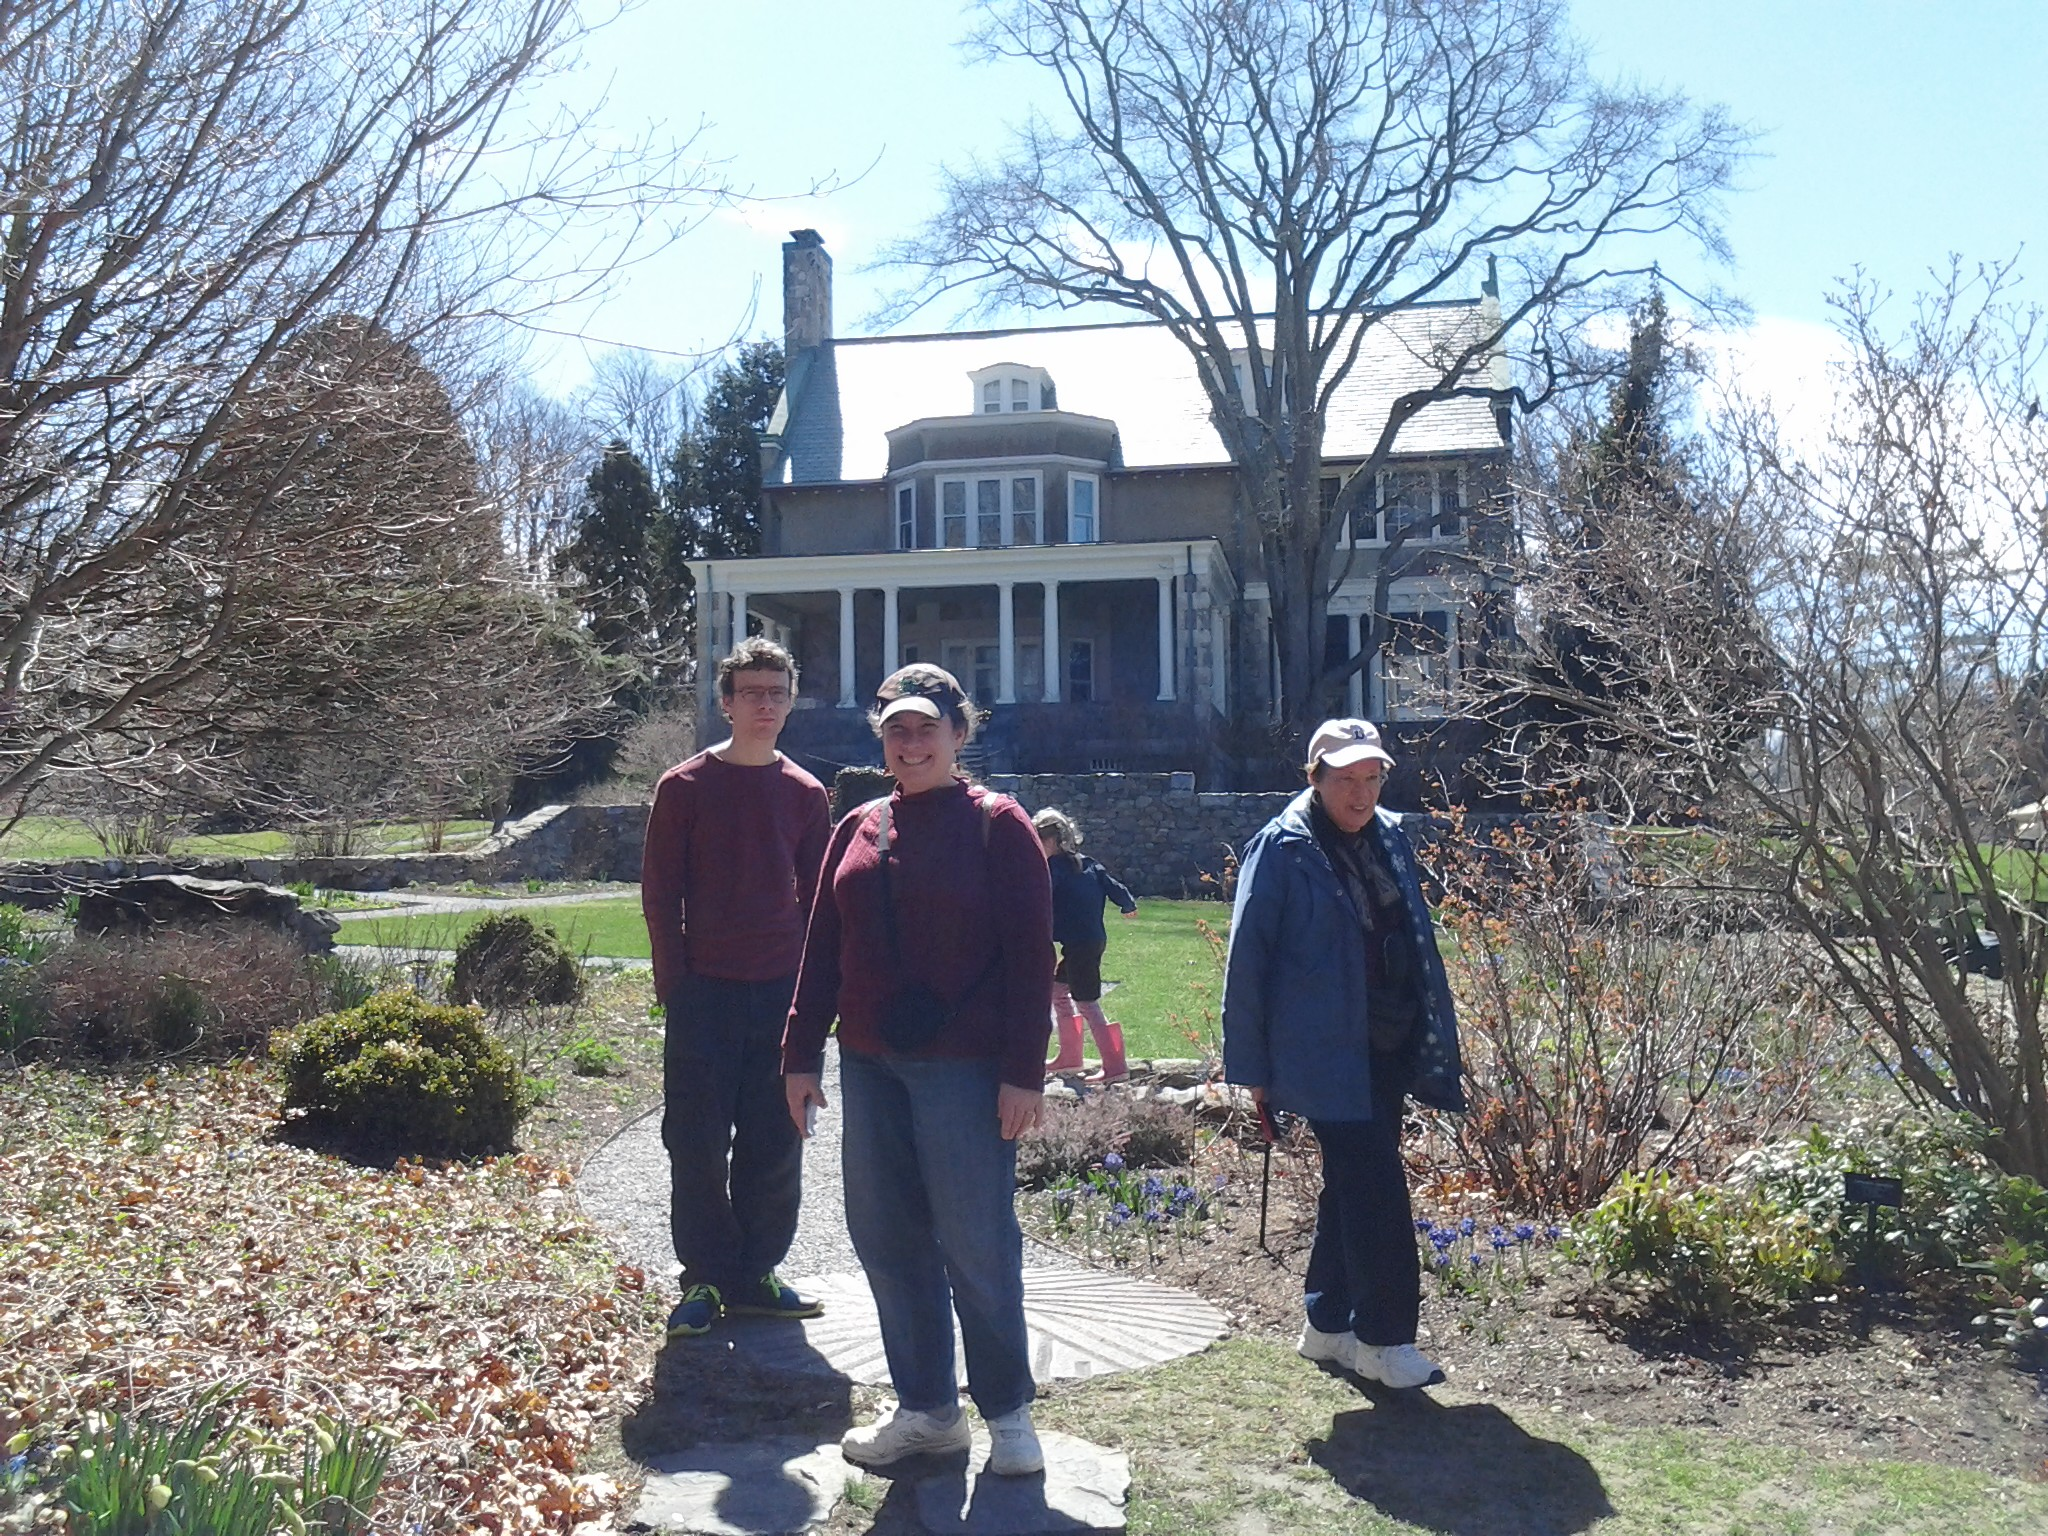 Ben, Me, K and Mom beside Blythwold Mansion, in the daffodil garden that wasn't blooming yet.